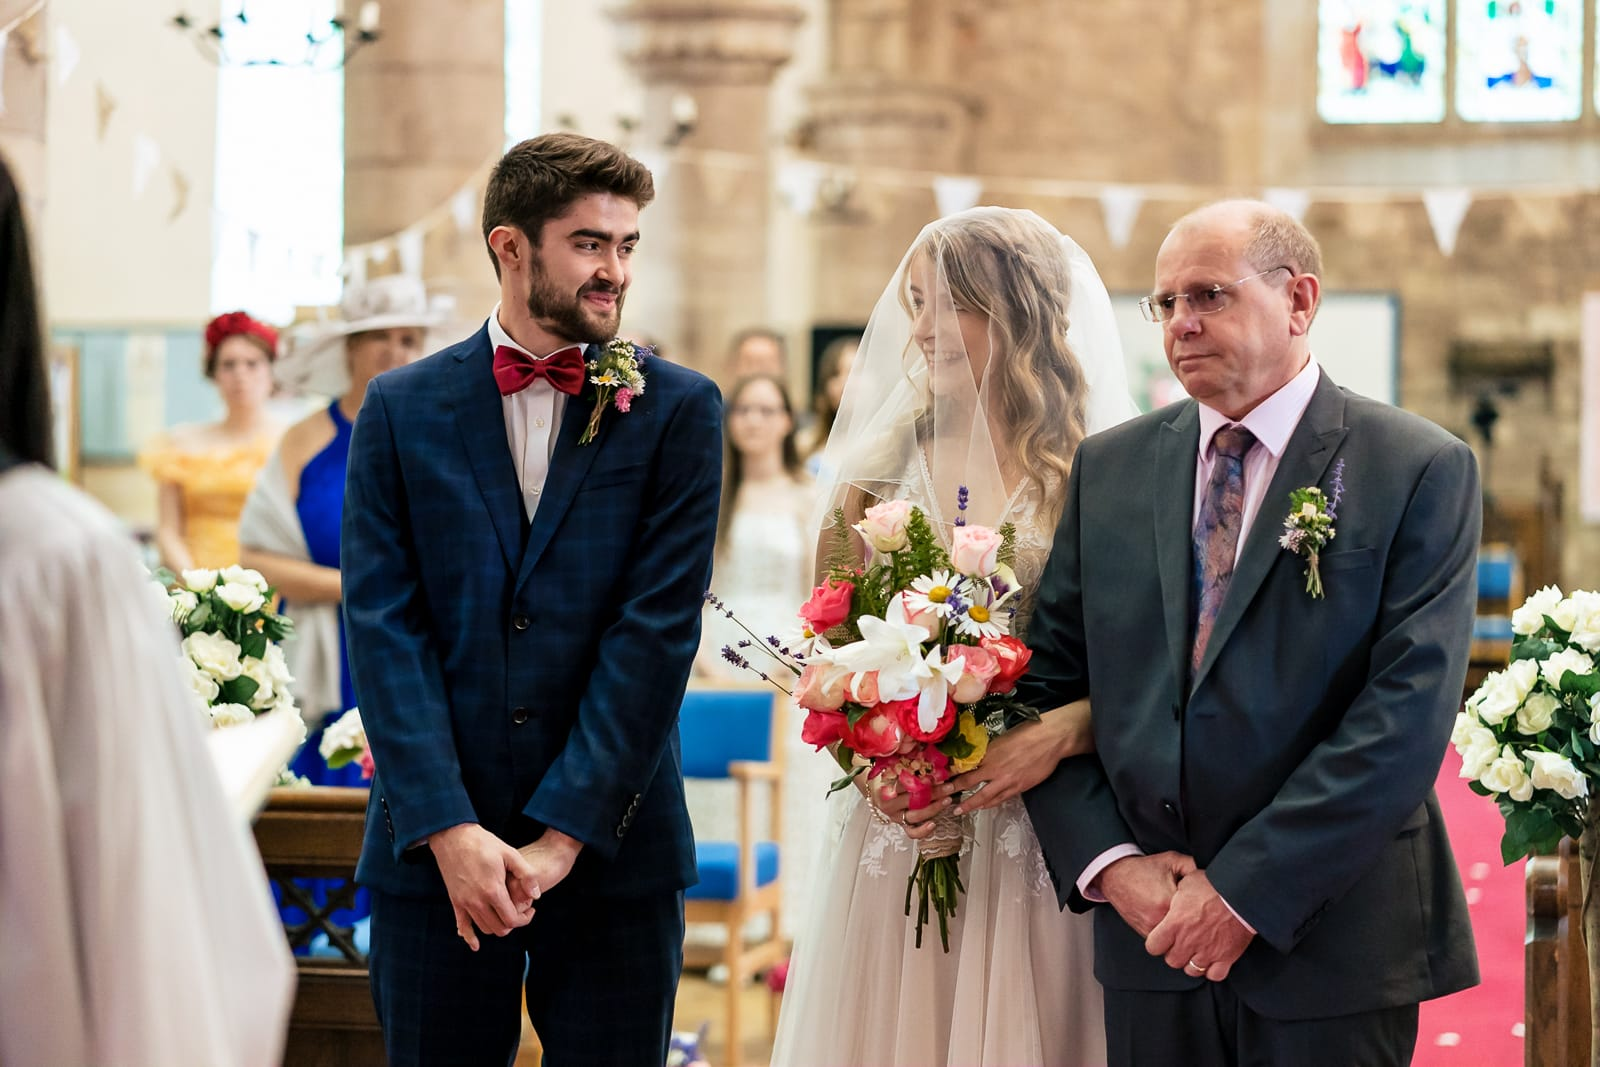 bride and groom looking lovingly at each other during their wedding ceremony at the St Peters Church in Bromyard Herefordshire.